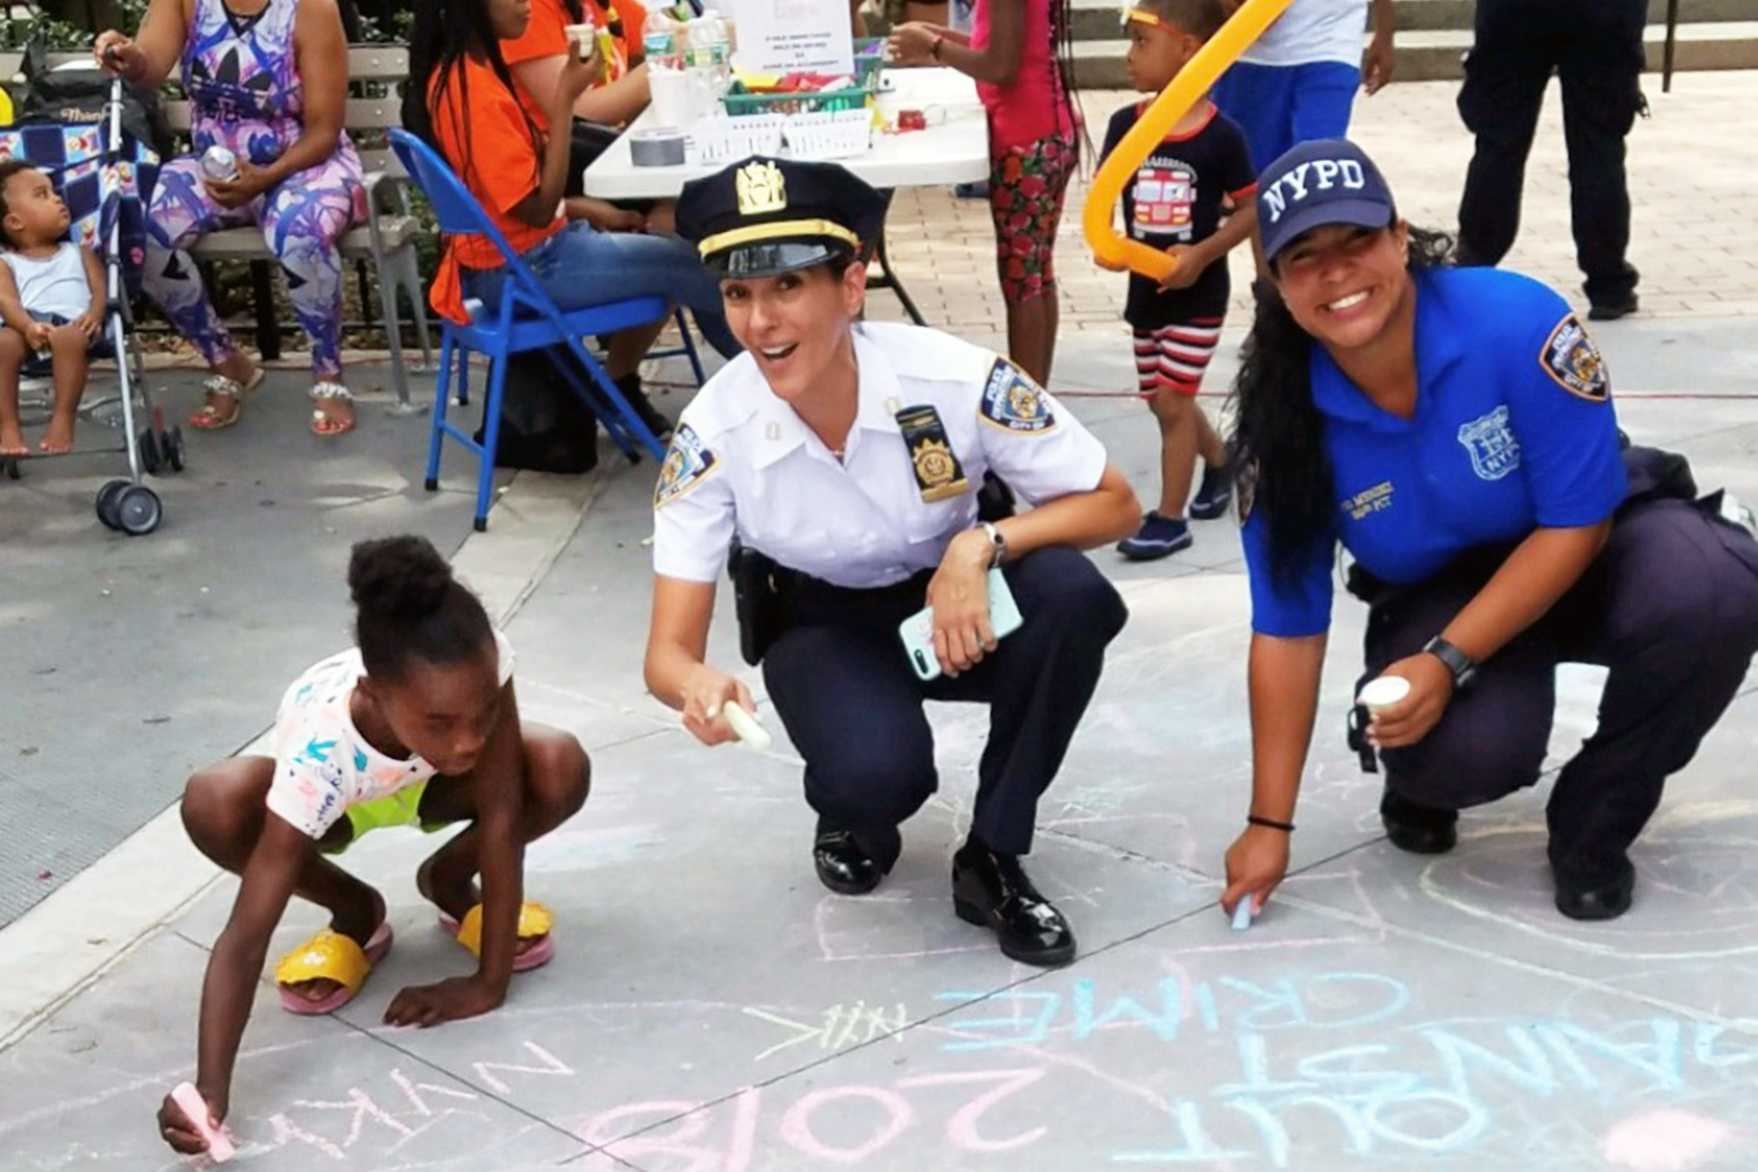 Police officers participating in a community event